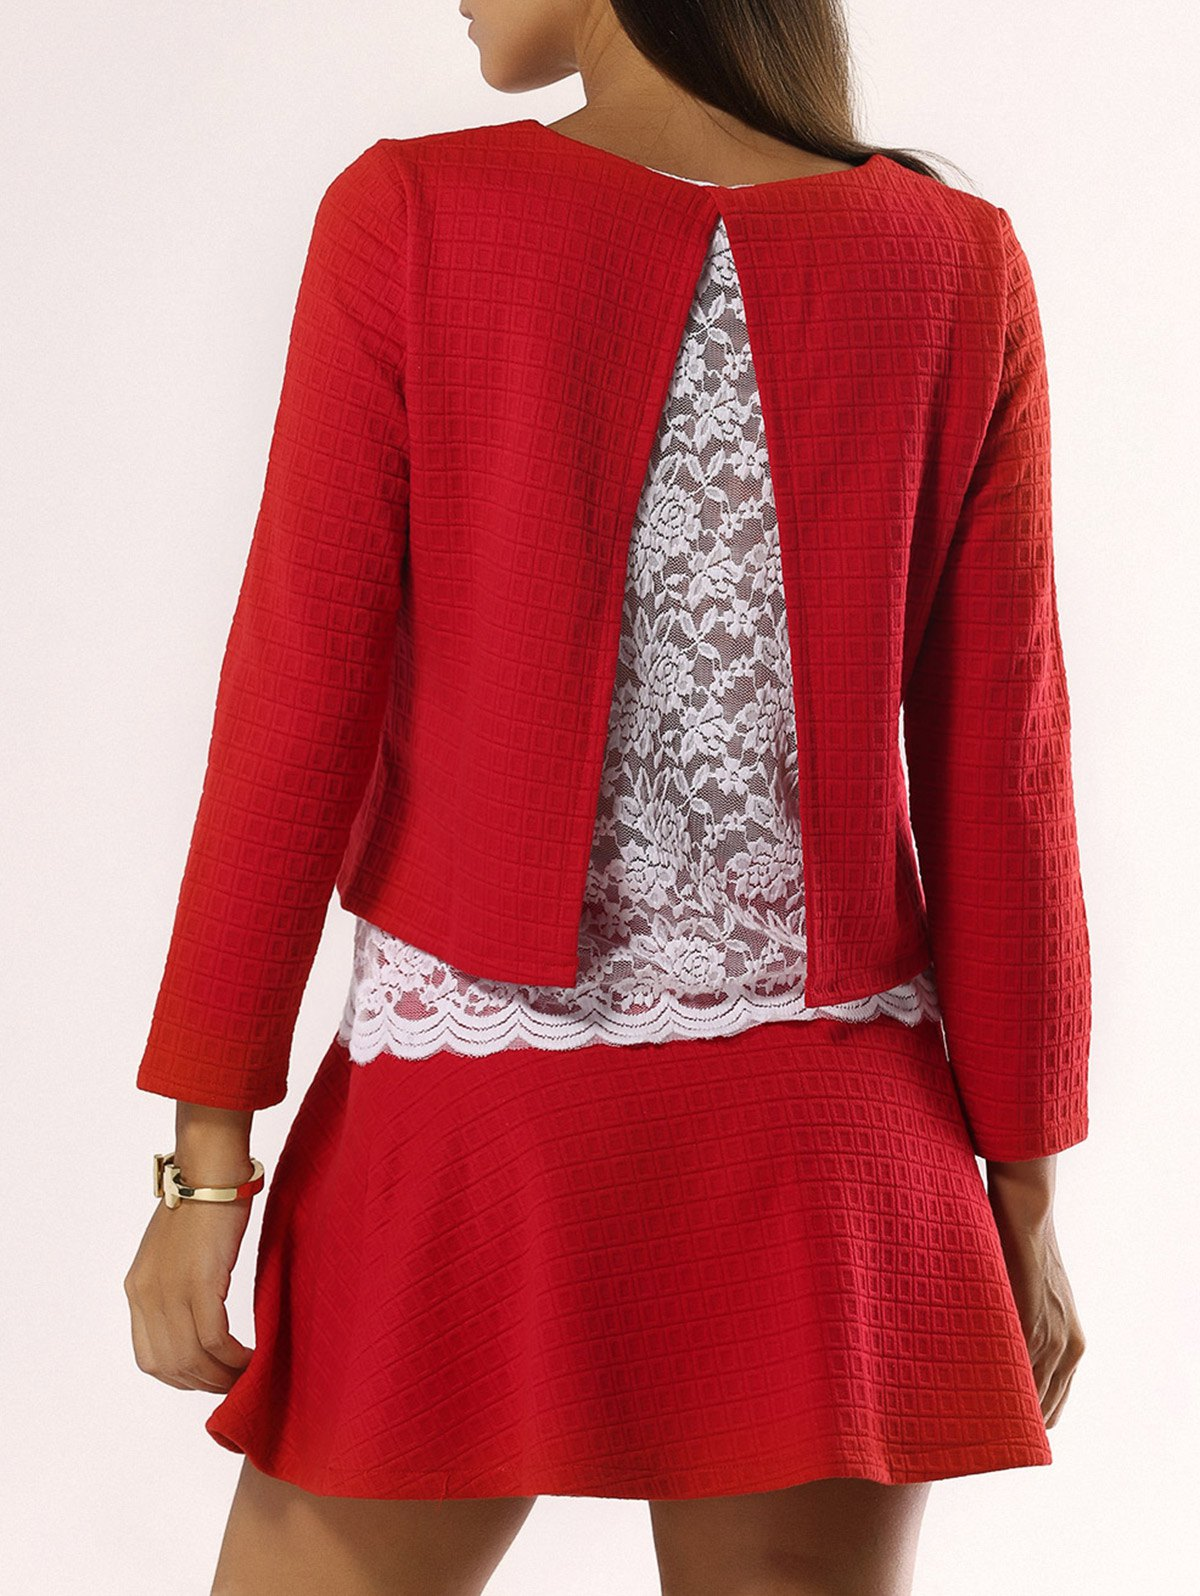 Sweet Back Slit Lace Top and Skirt Set For Women - RED XL